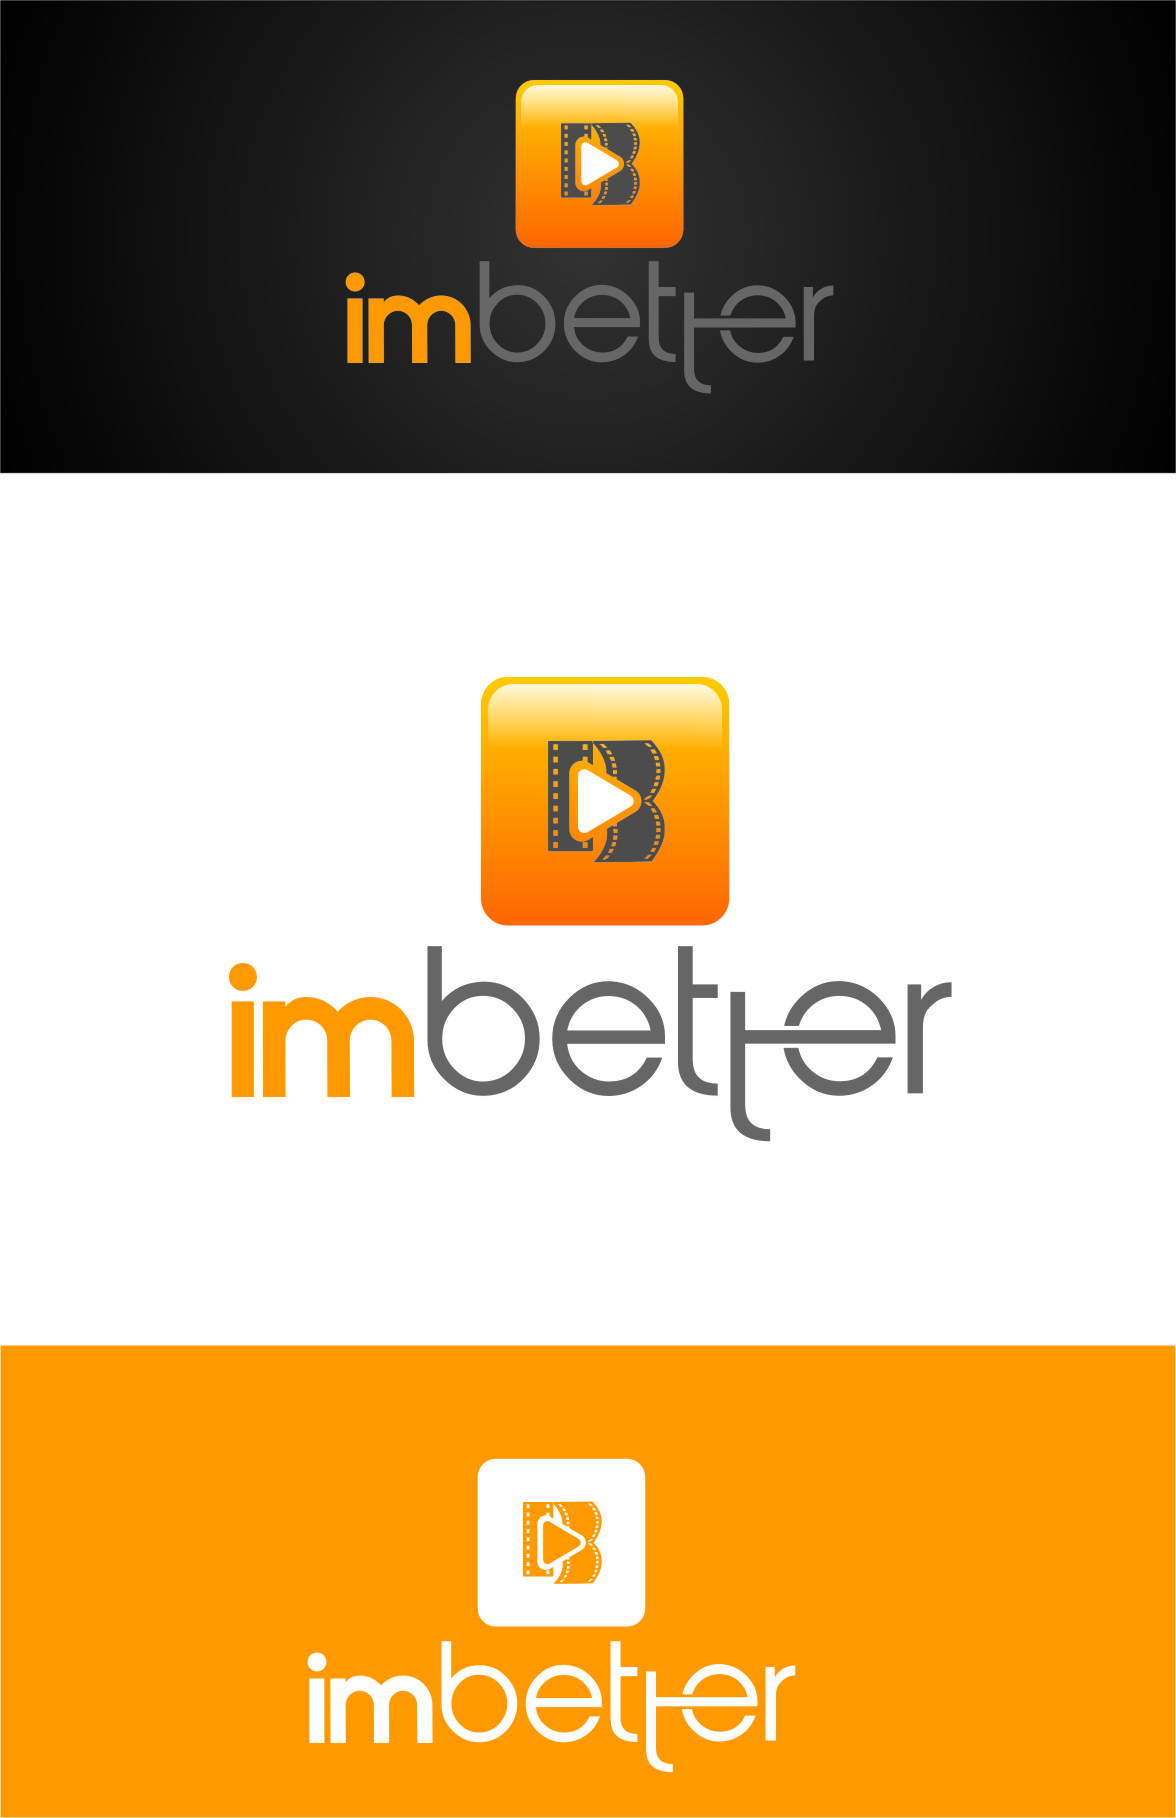 Logo Design by Ngepet_art - Entry No. 142 in the Logo Design Contest Imaginative Logo Design for imbetter.